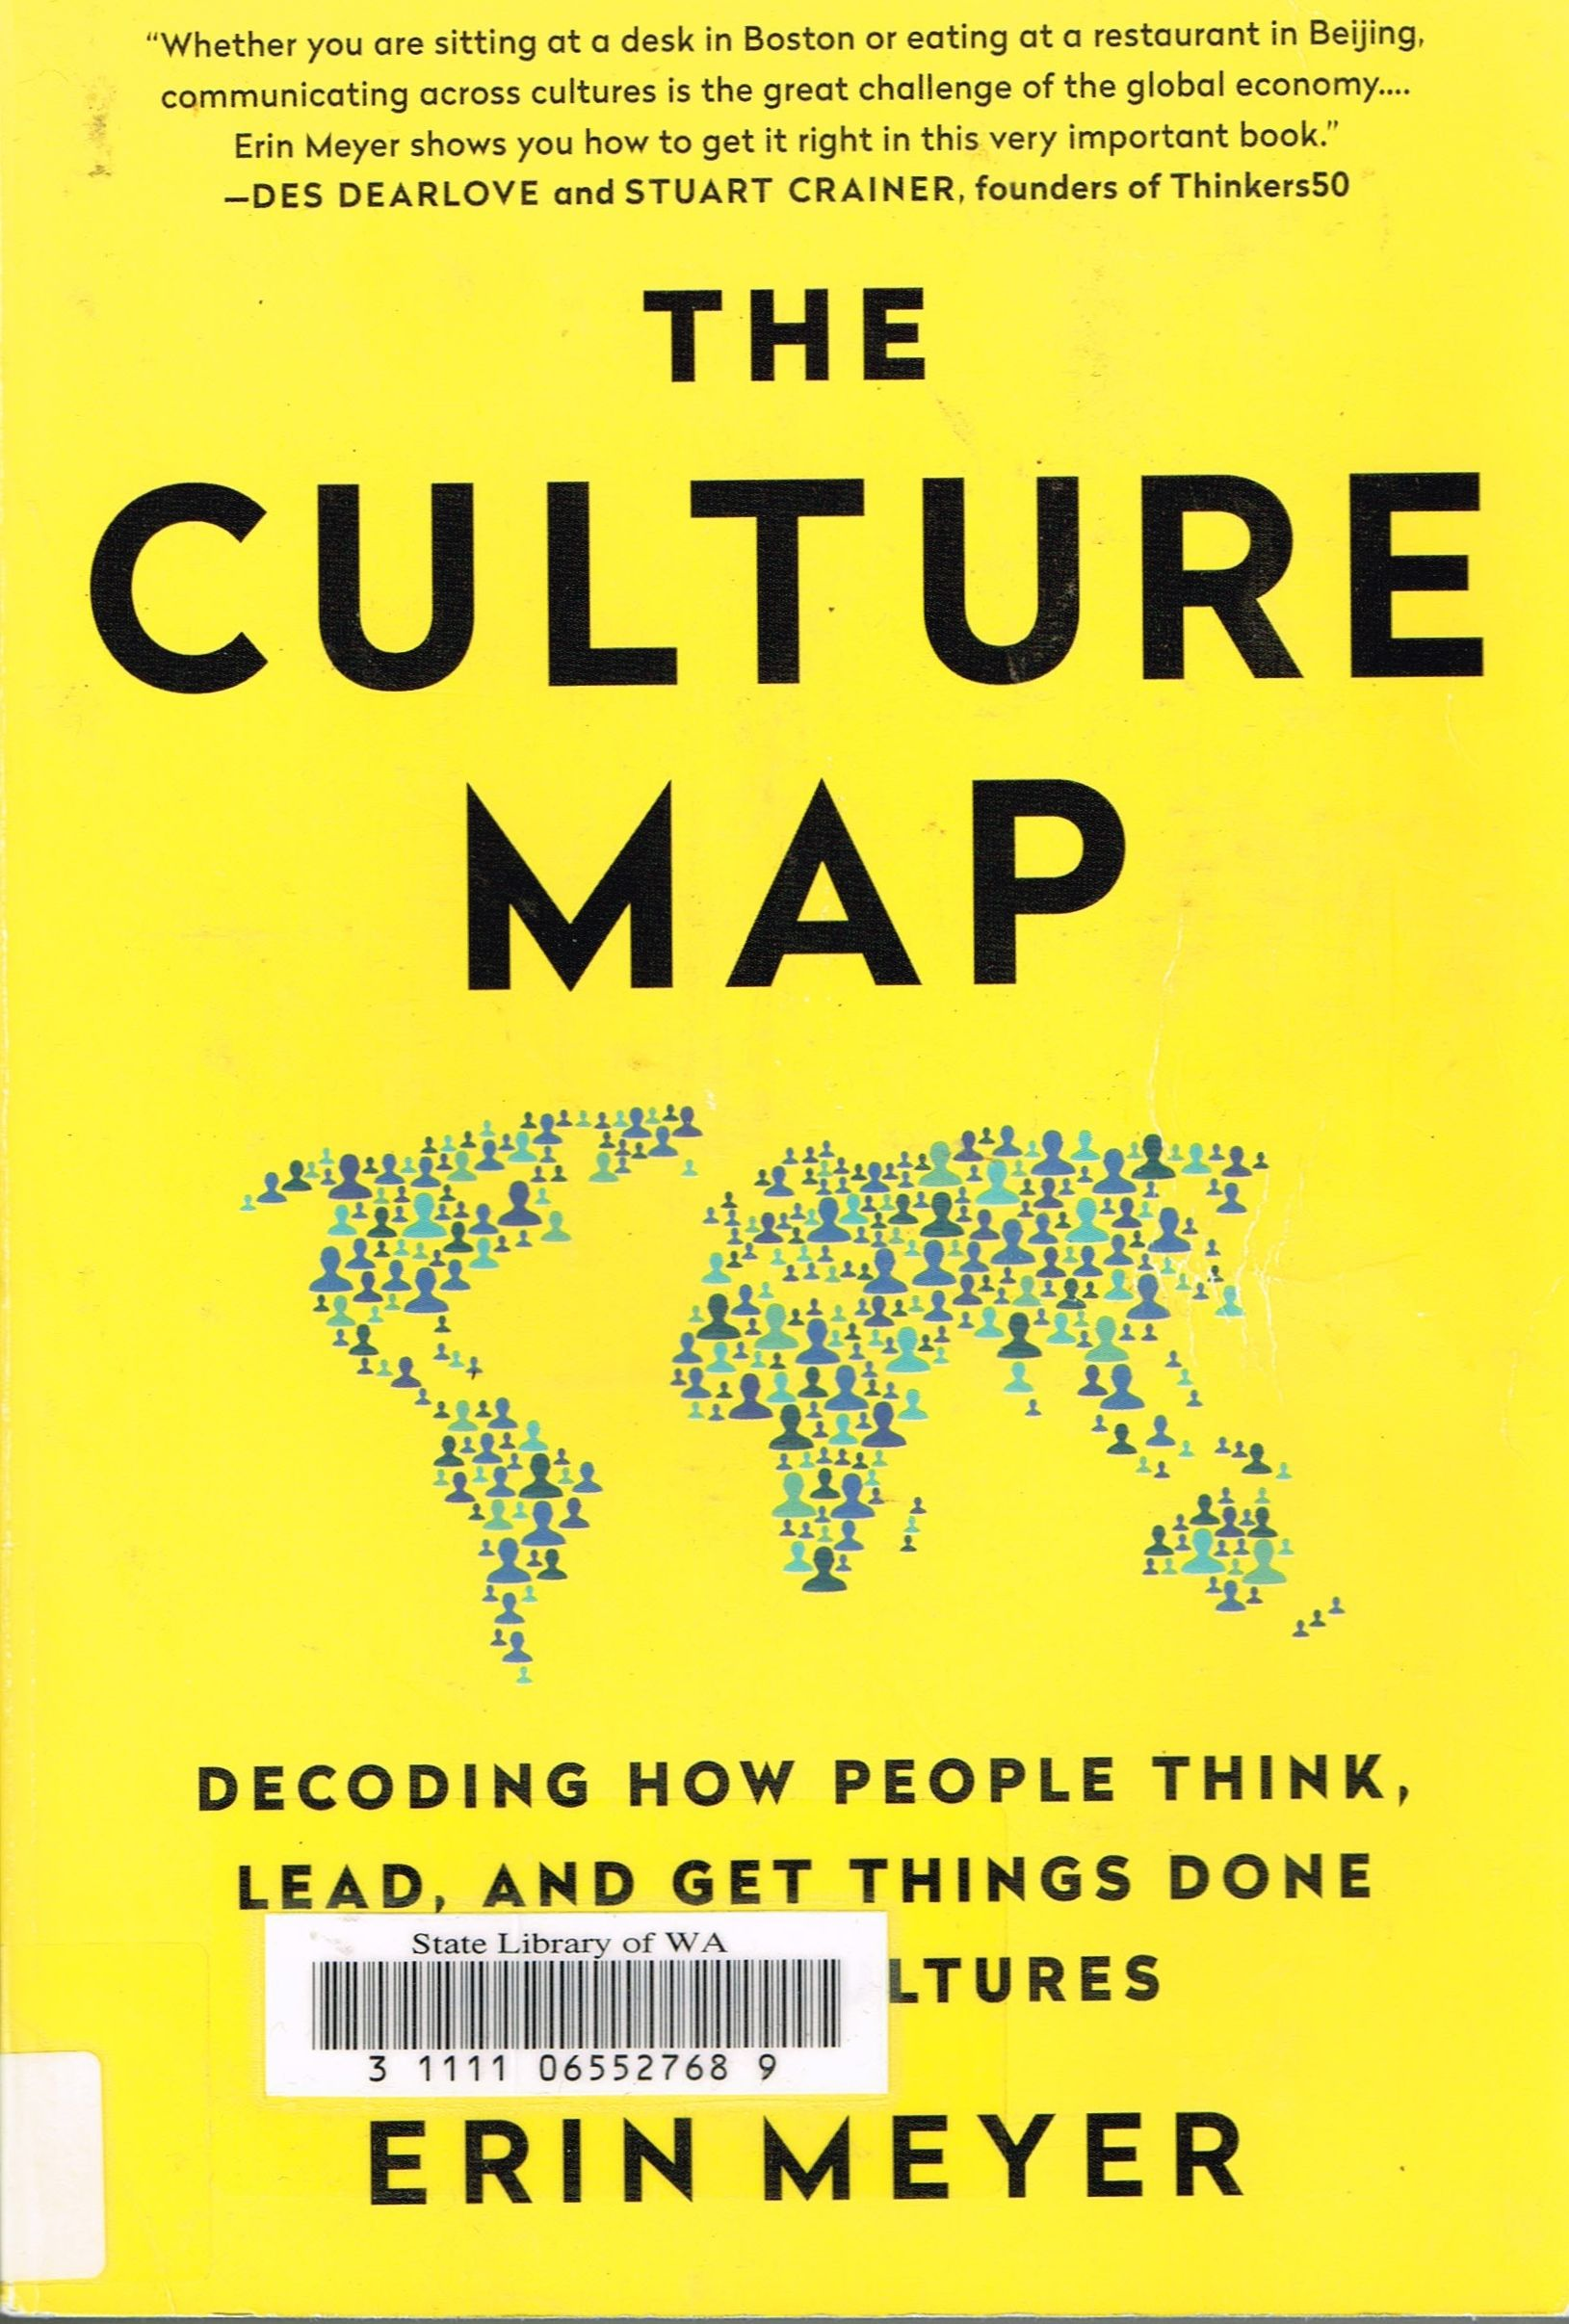 The Culture Map (2014) By Erin Meyer Really Fascinating And